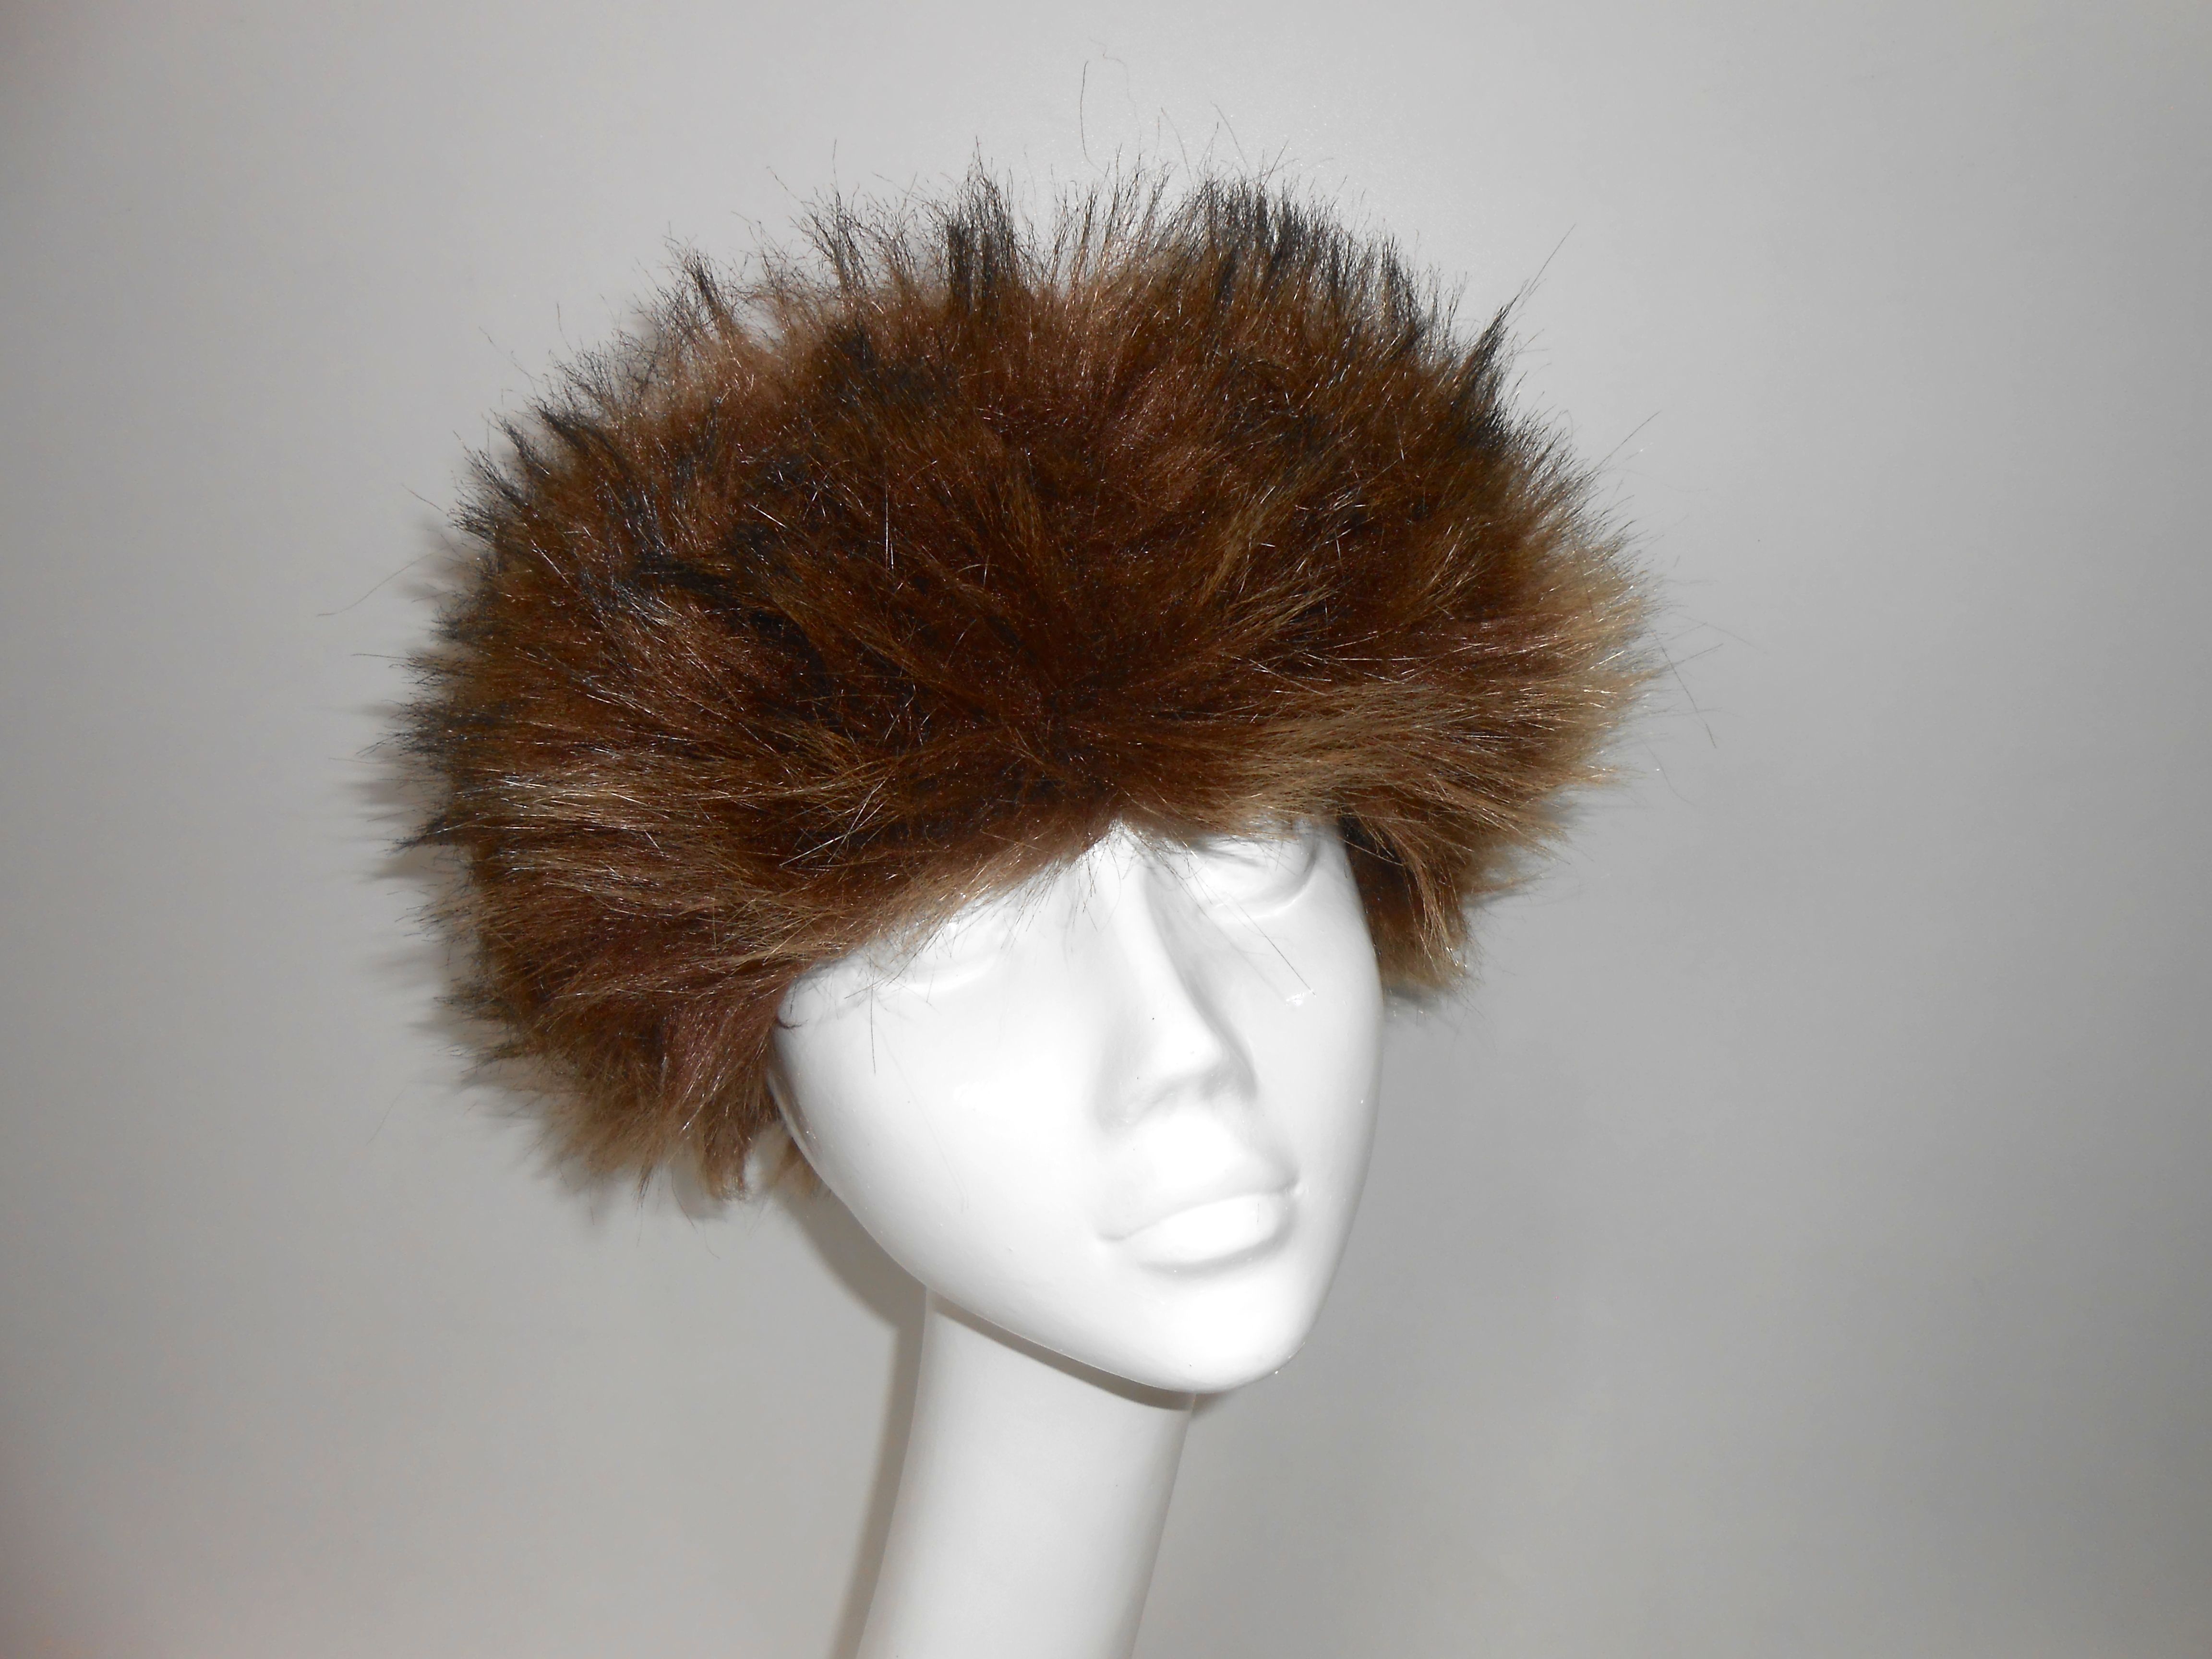 253025bf765 Mongolian style faux fur cossack hat in Lynx Sable with suede leather  upper. Fully lined. Made from 60% Acrylic 25% Leather 15% Polyester.